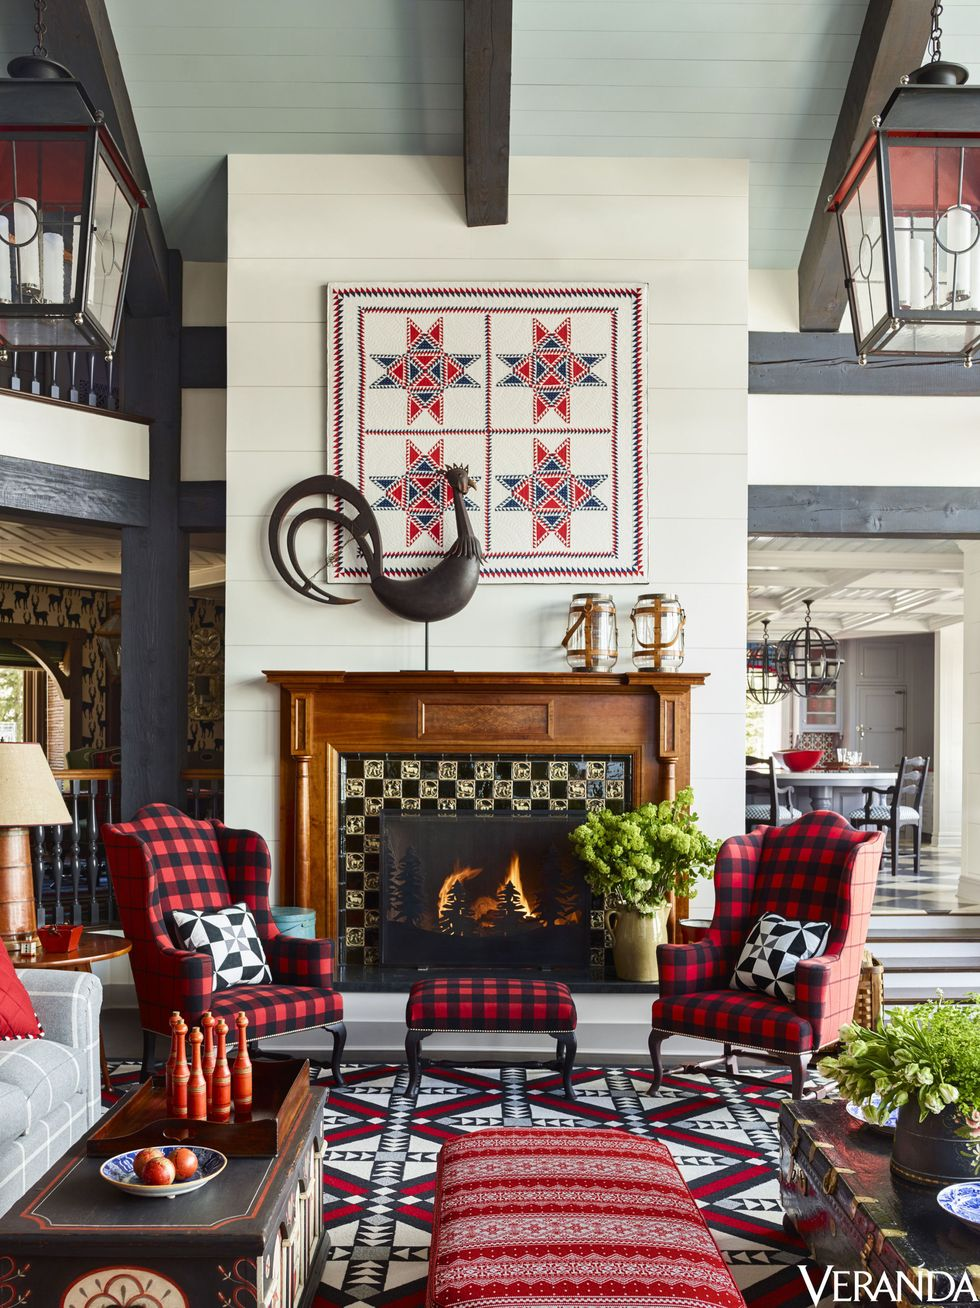 20 Cozy Set Up 2 Chairs In Front Of A Fireplace The